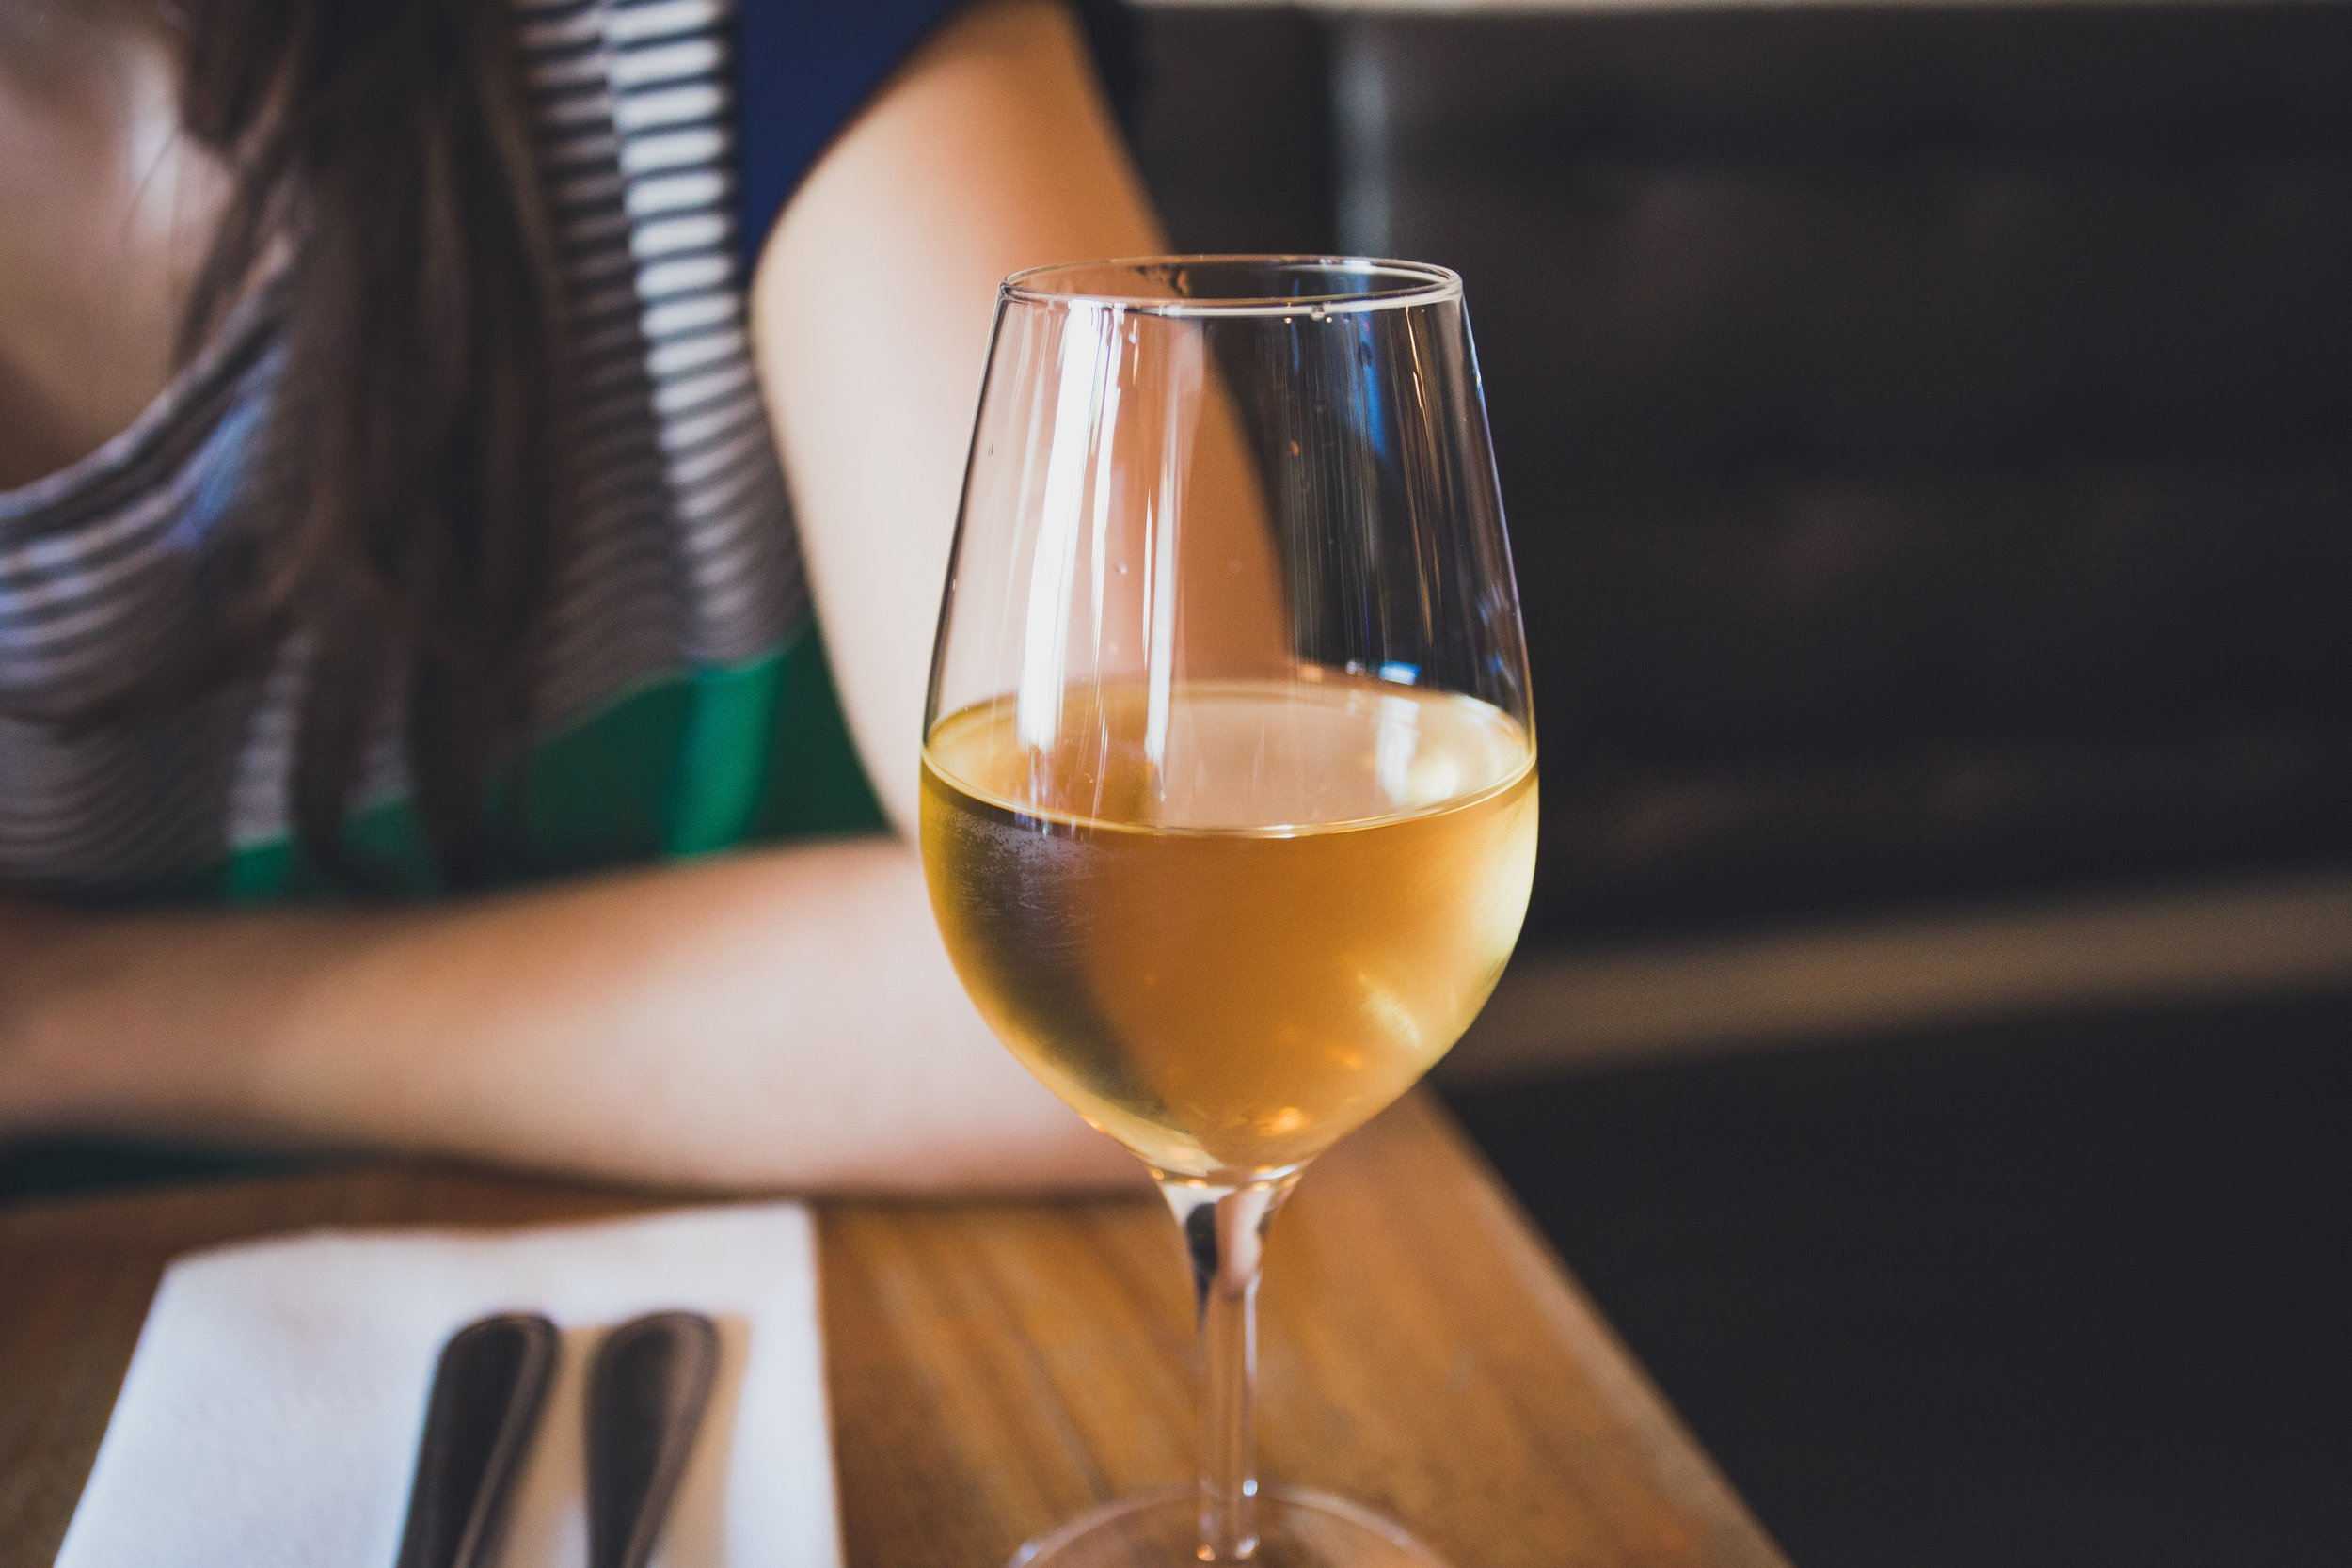 white wine by the glass and bottle